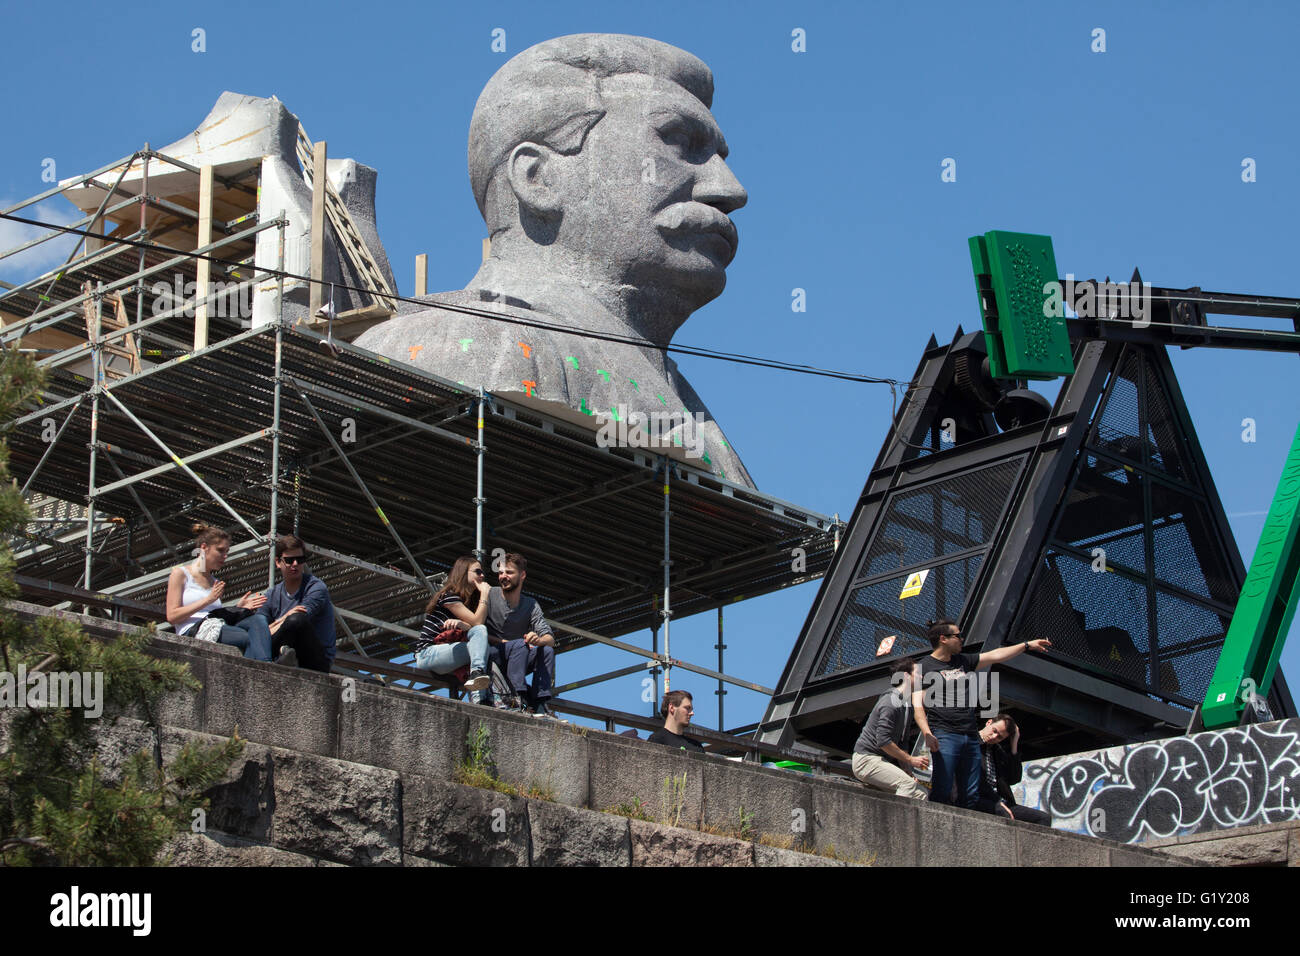 Huge head of Soviet dictator Joseph Stalin rising over Letna Park in Prague, Czech Republic, during the Czech Television - Stock Image